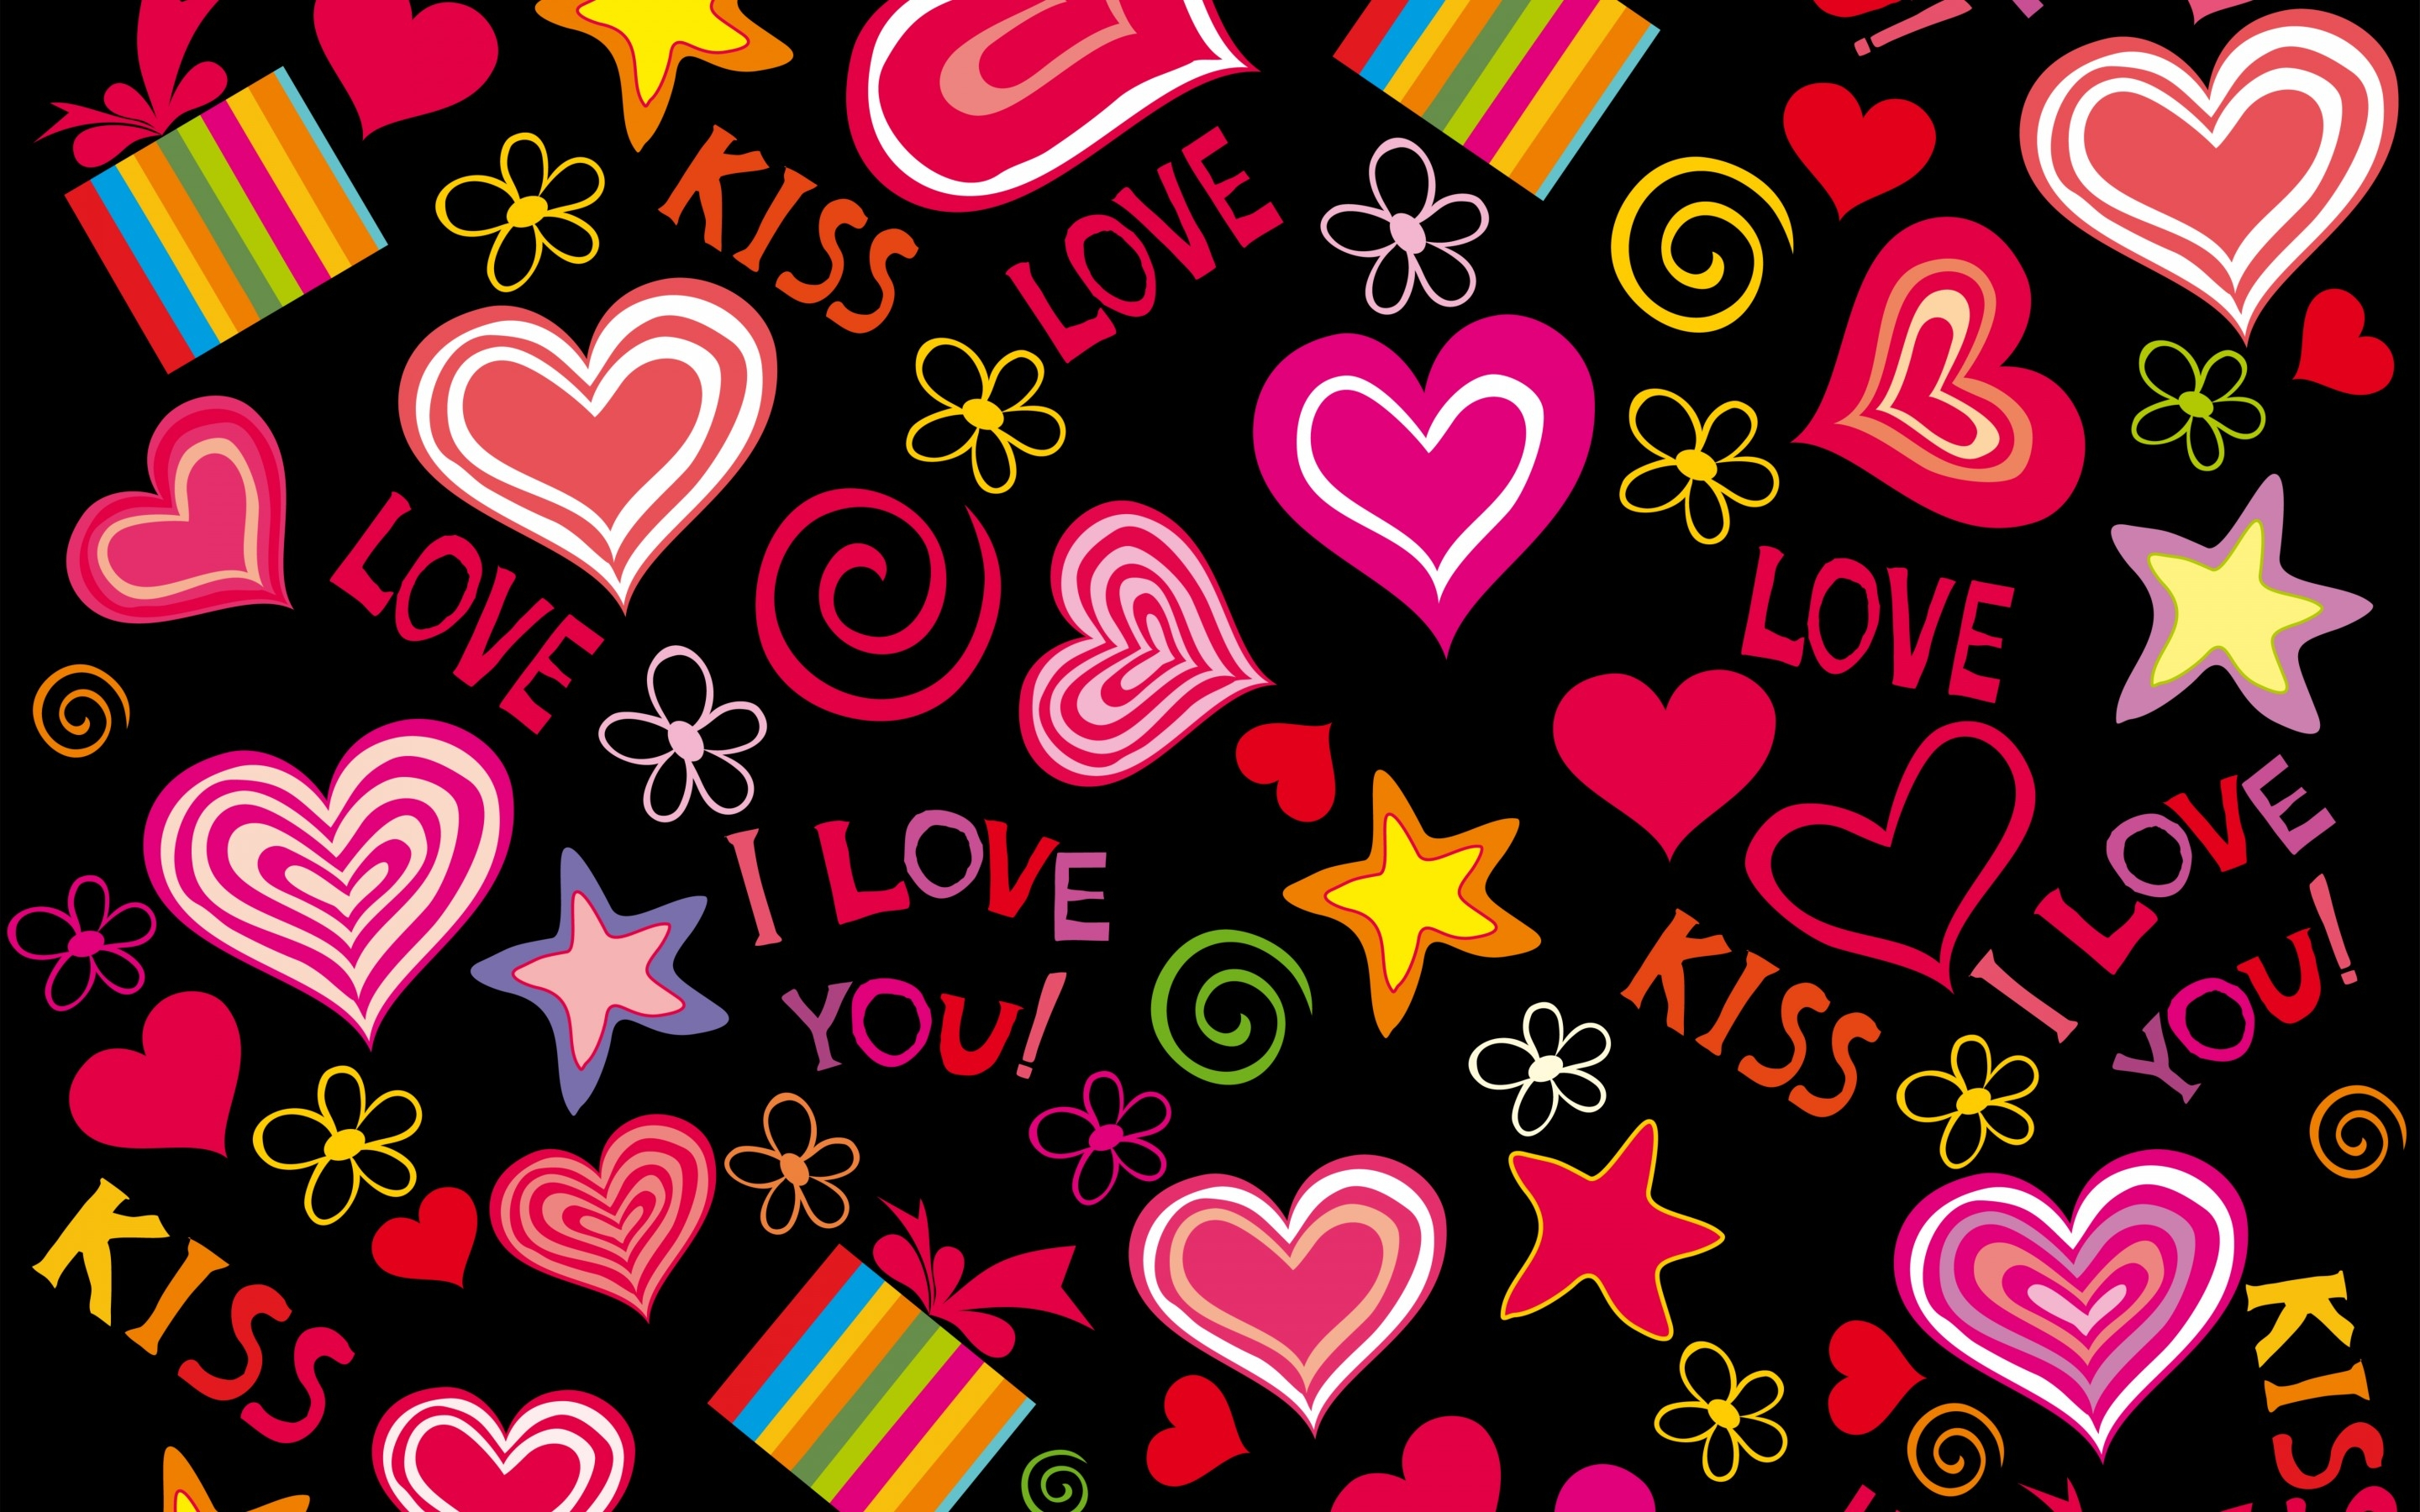 Love Hearts Full HD Papel de Parede and Background Image 2880x1800 ID:676275